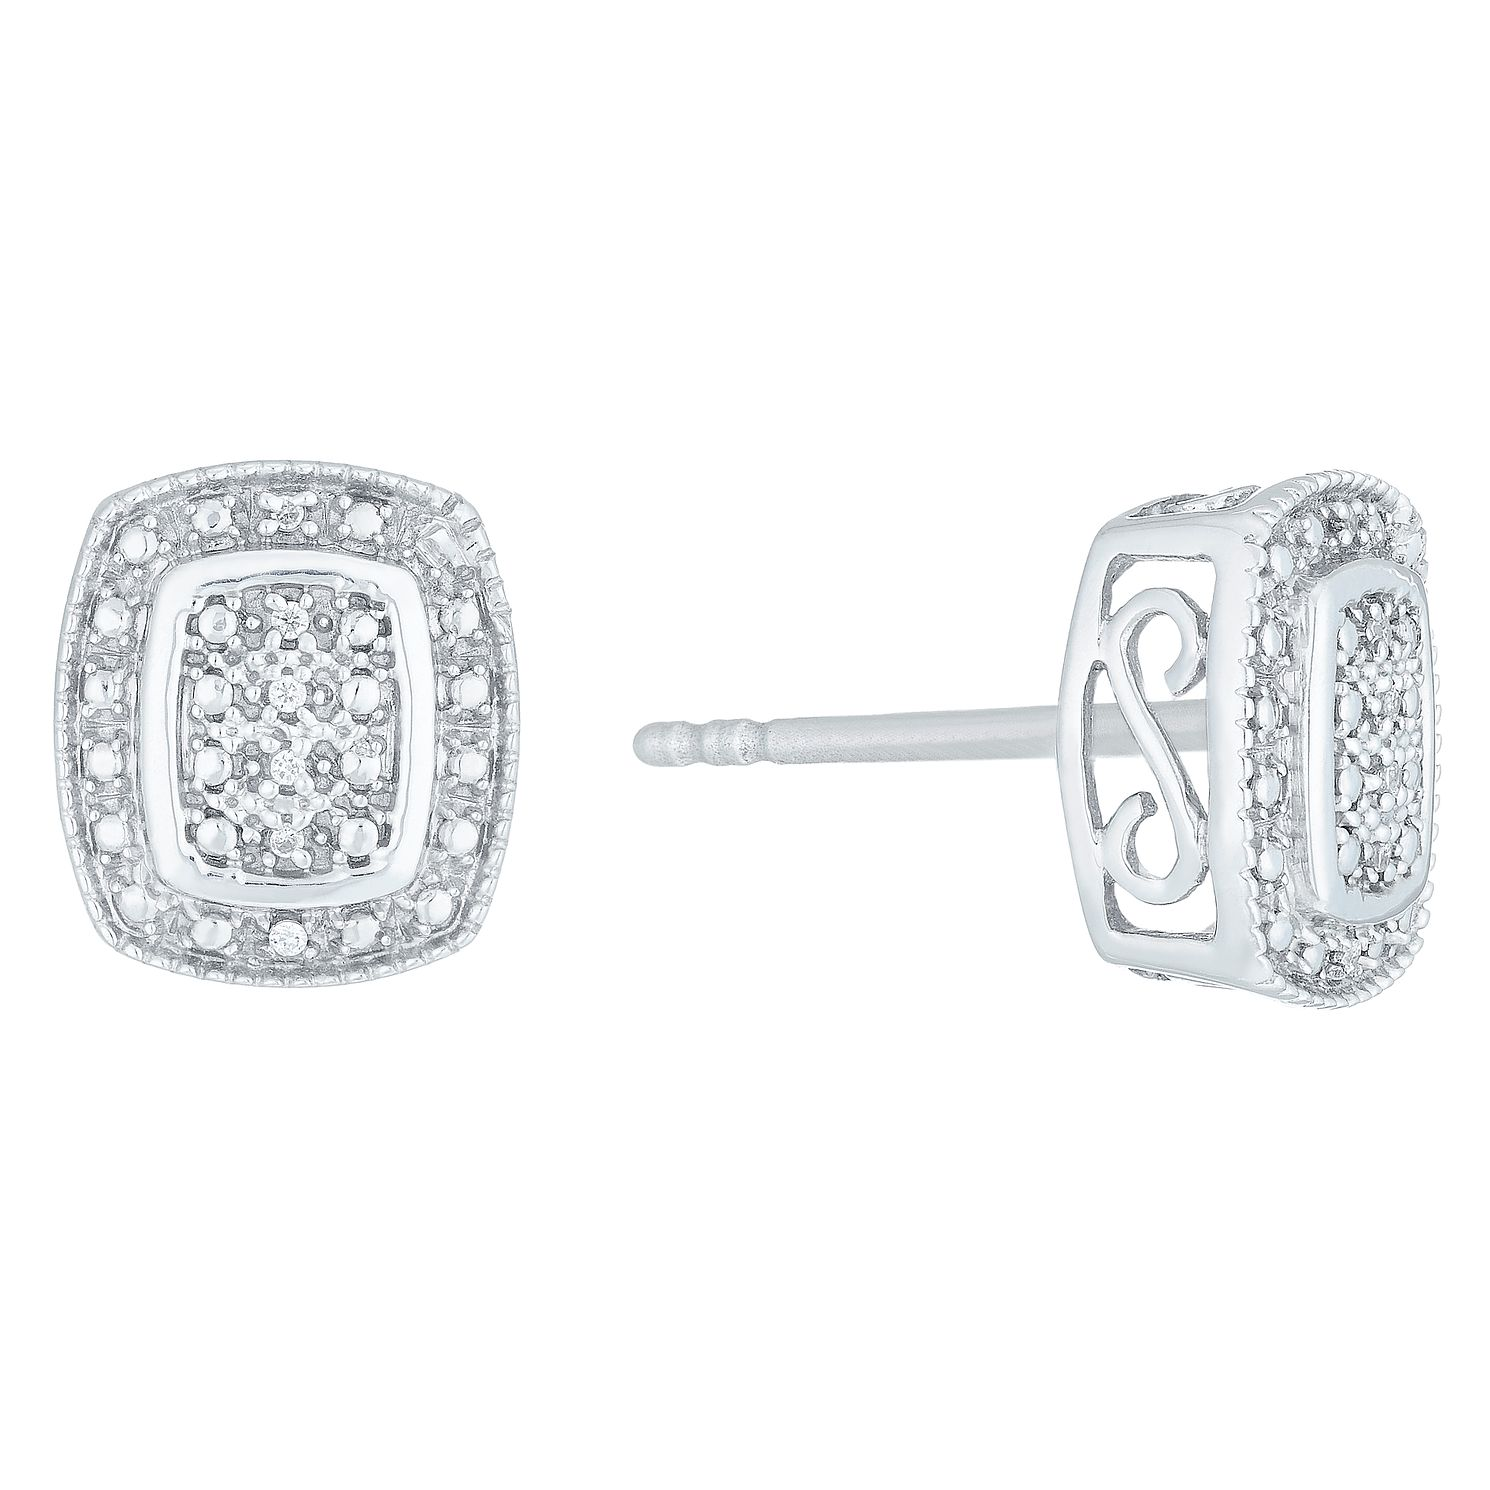 size asli diamond aetherair awesome stud of earring inspirational chart co square earrings